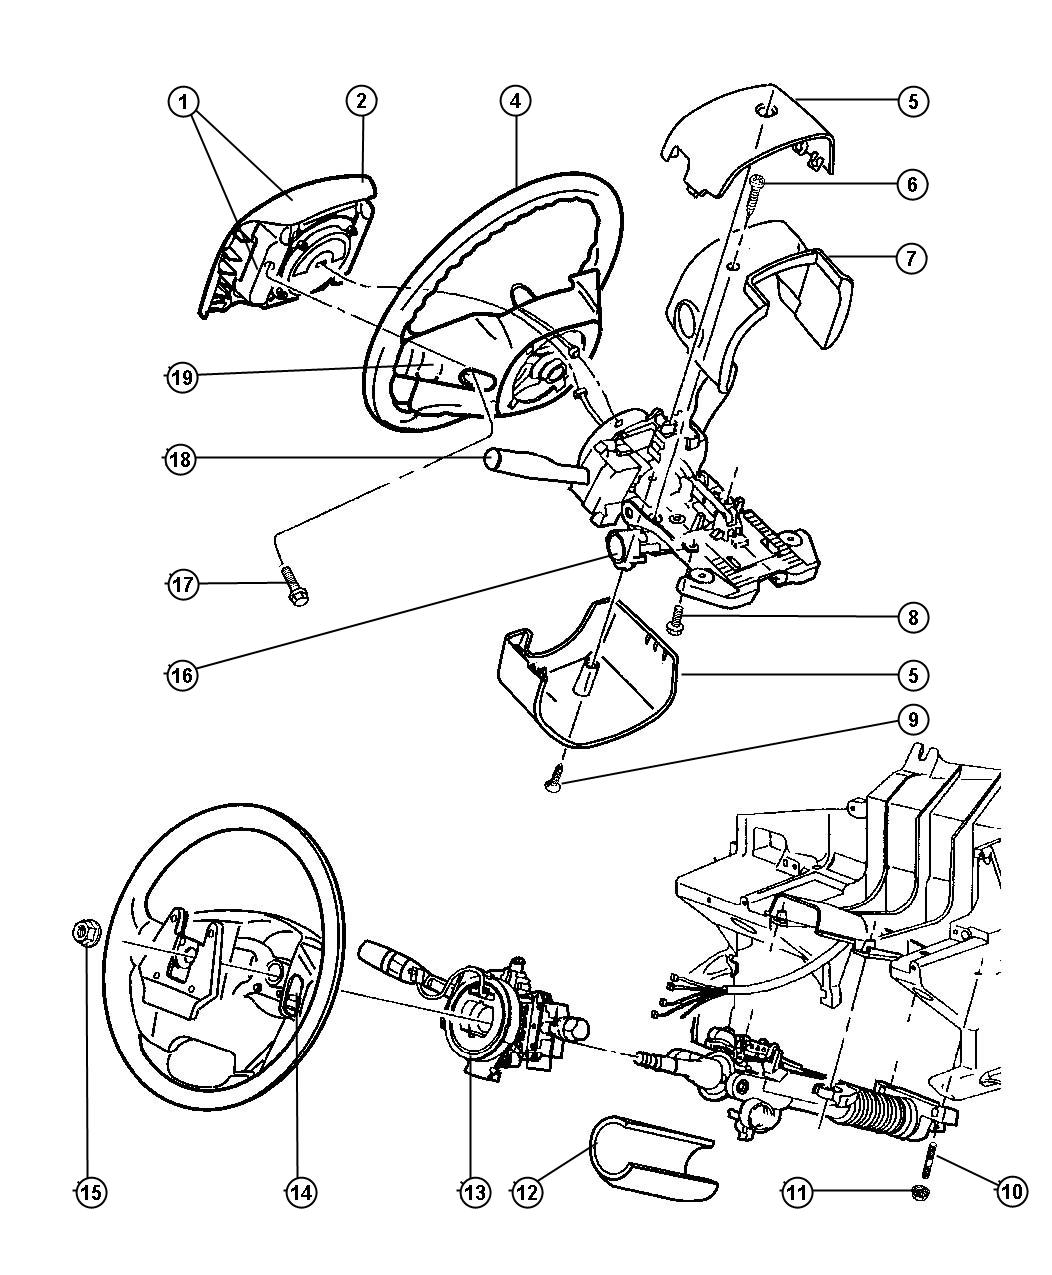 hight resolution of engine wiring diagram for 1999 jeep grand cherokee engine 01 jeep grand cherokee wiring diagram 2007 jeep grand cherokee wiring diagram